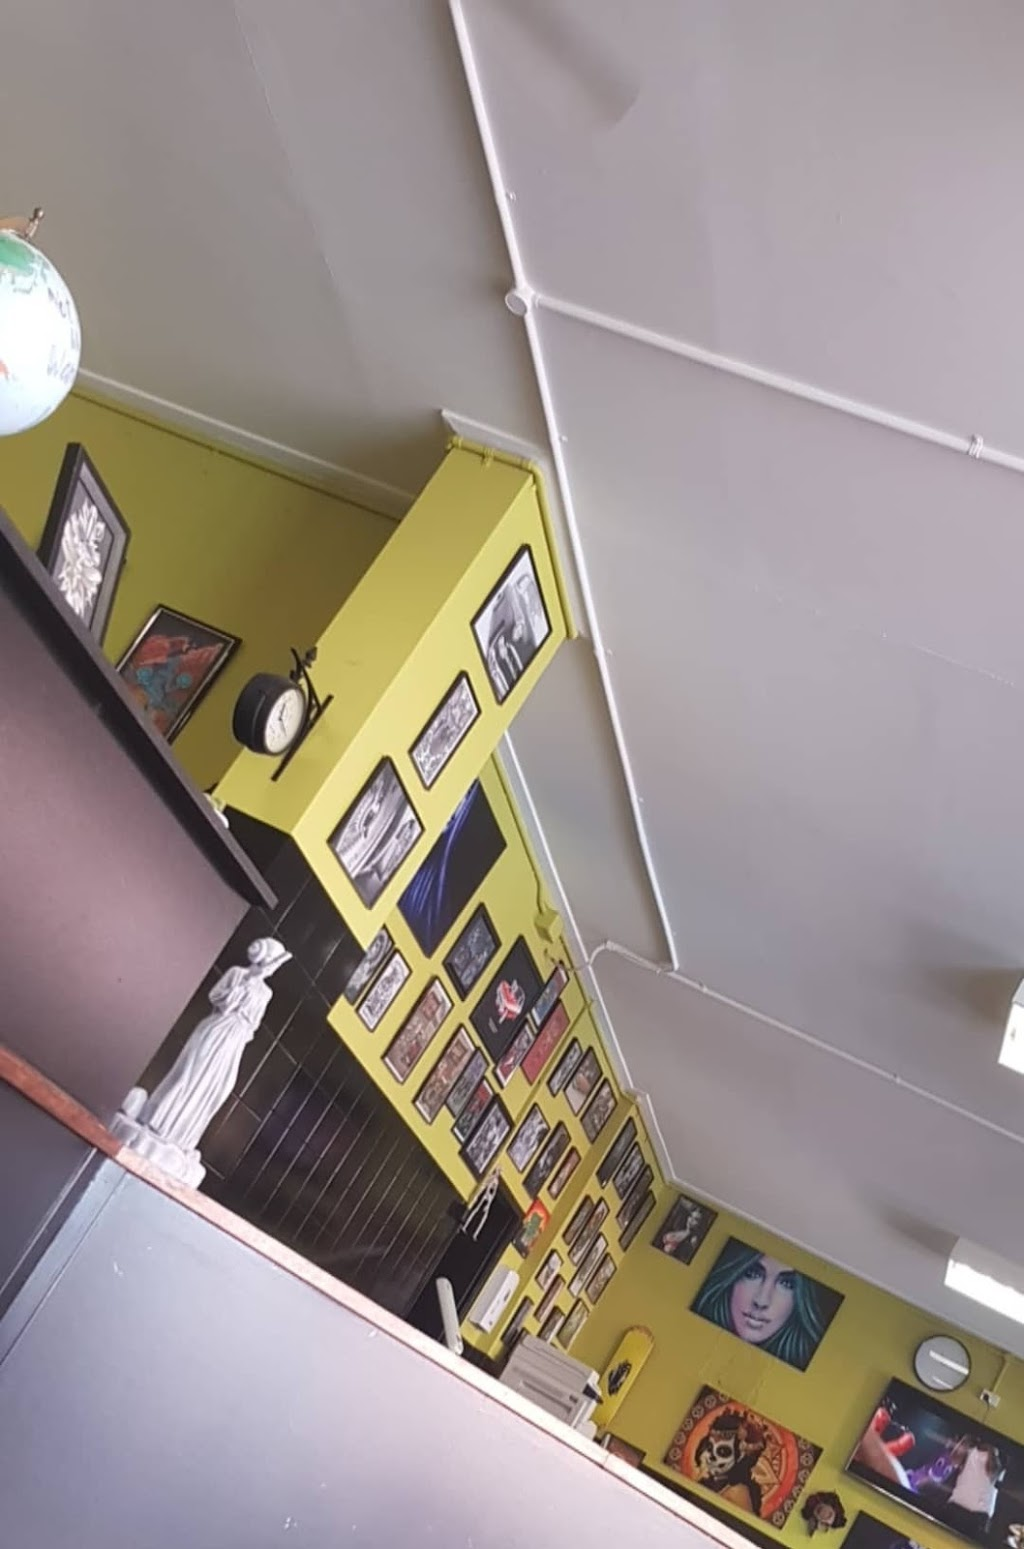 STOMP INK COLLECTIVE TATTOO STUDIO | store | 2/152 Bellarine Hwy, Newcomb VIC 3219, Australia | 0352488073 OR +61 3 5248 8073